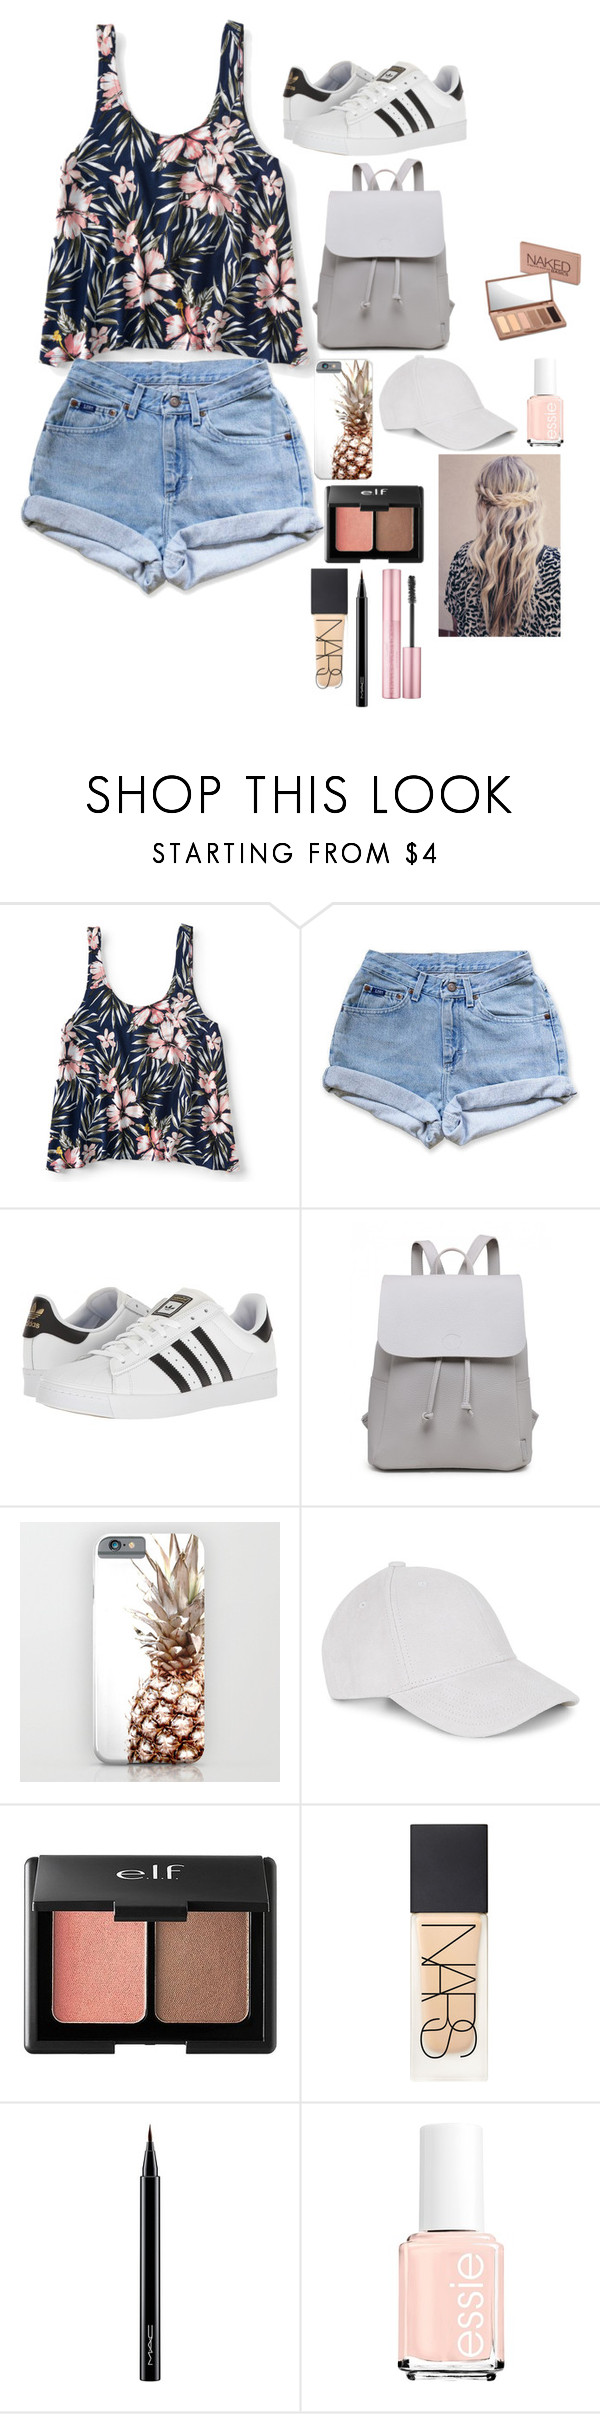 """""""Untitled #247"""" by katelynrose123 ❤ liked on Polyvore featuring Aéropostale, Levi's, adidas, Le Amonie, Charlotte Russe, NARS Cosmetics, MAC Cosmetics and Urban Decay"""